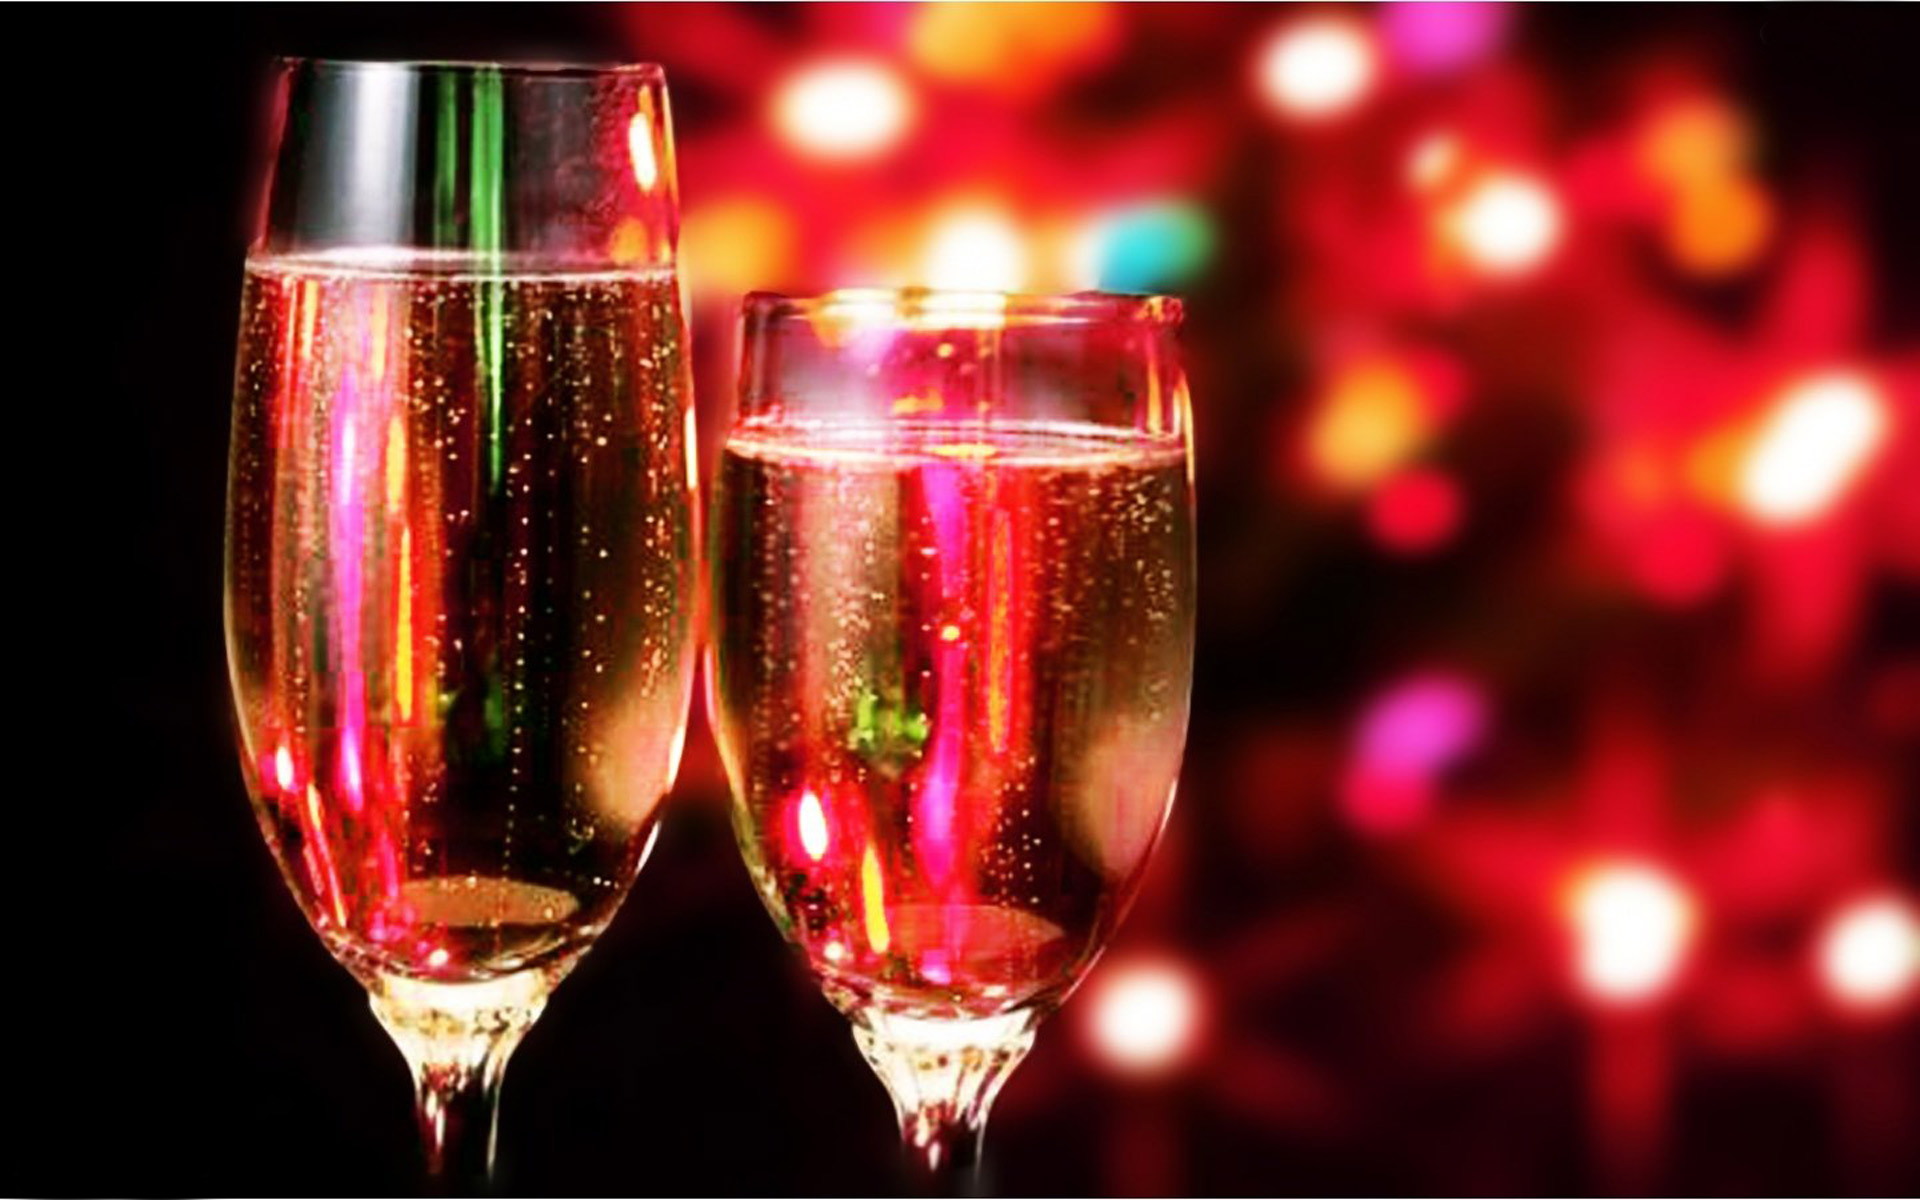 Beautiful New Year Pictures - Wallpaper, High Definition, High ...